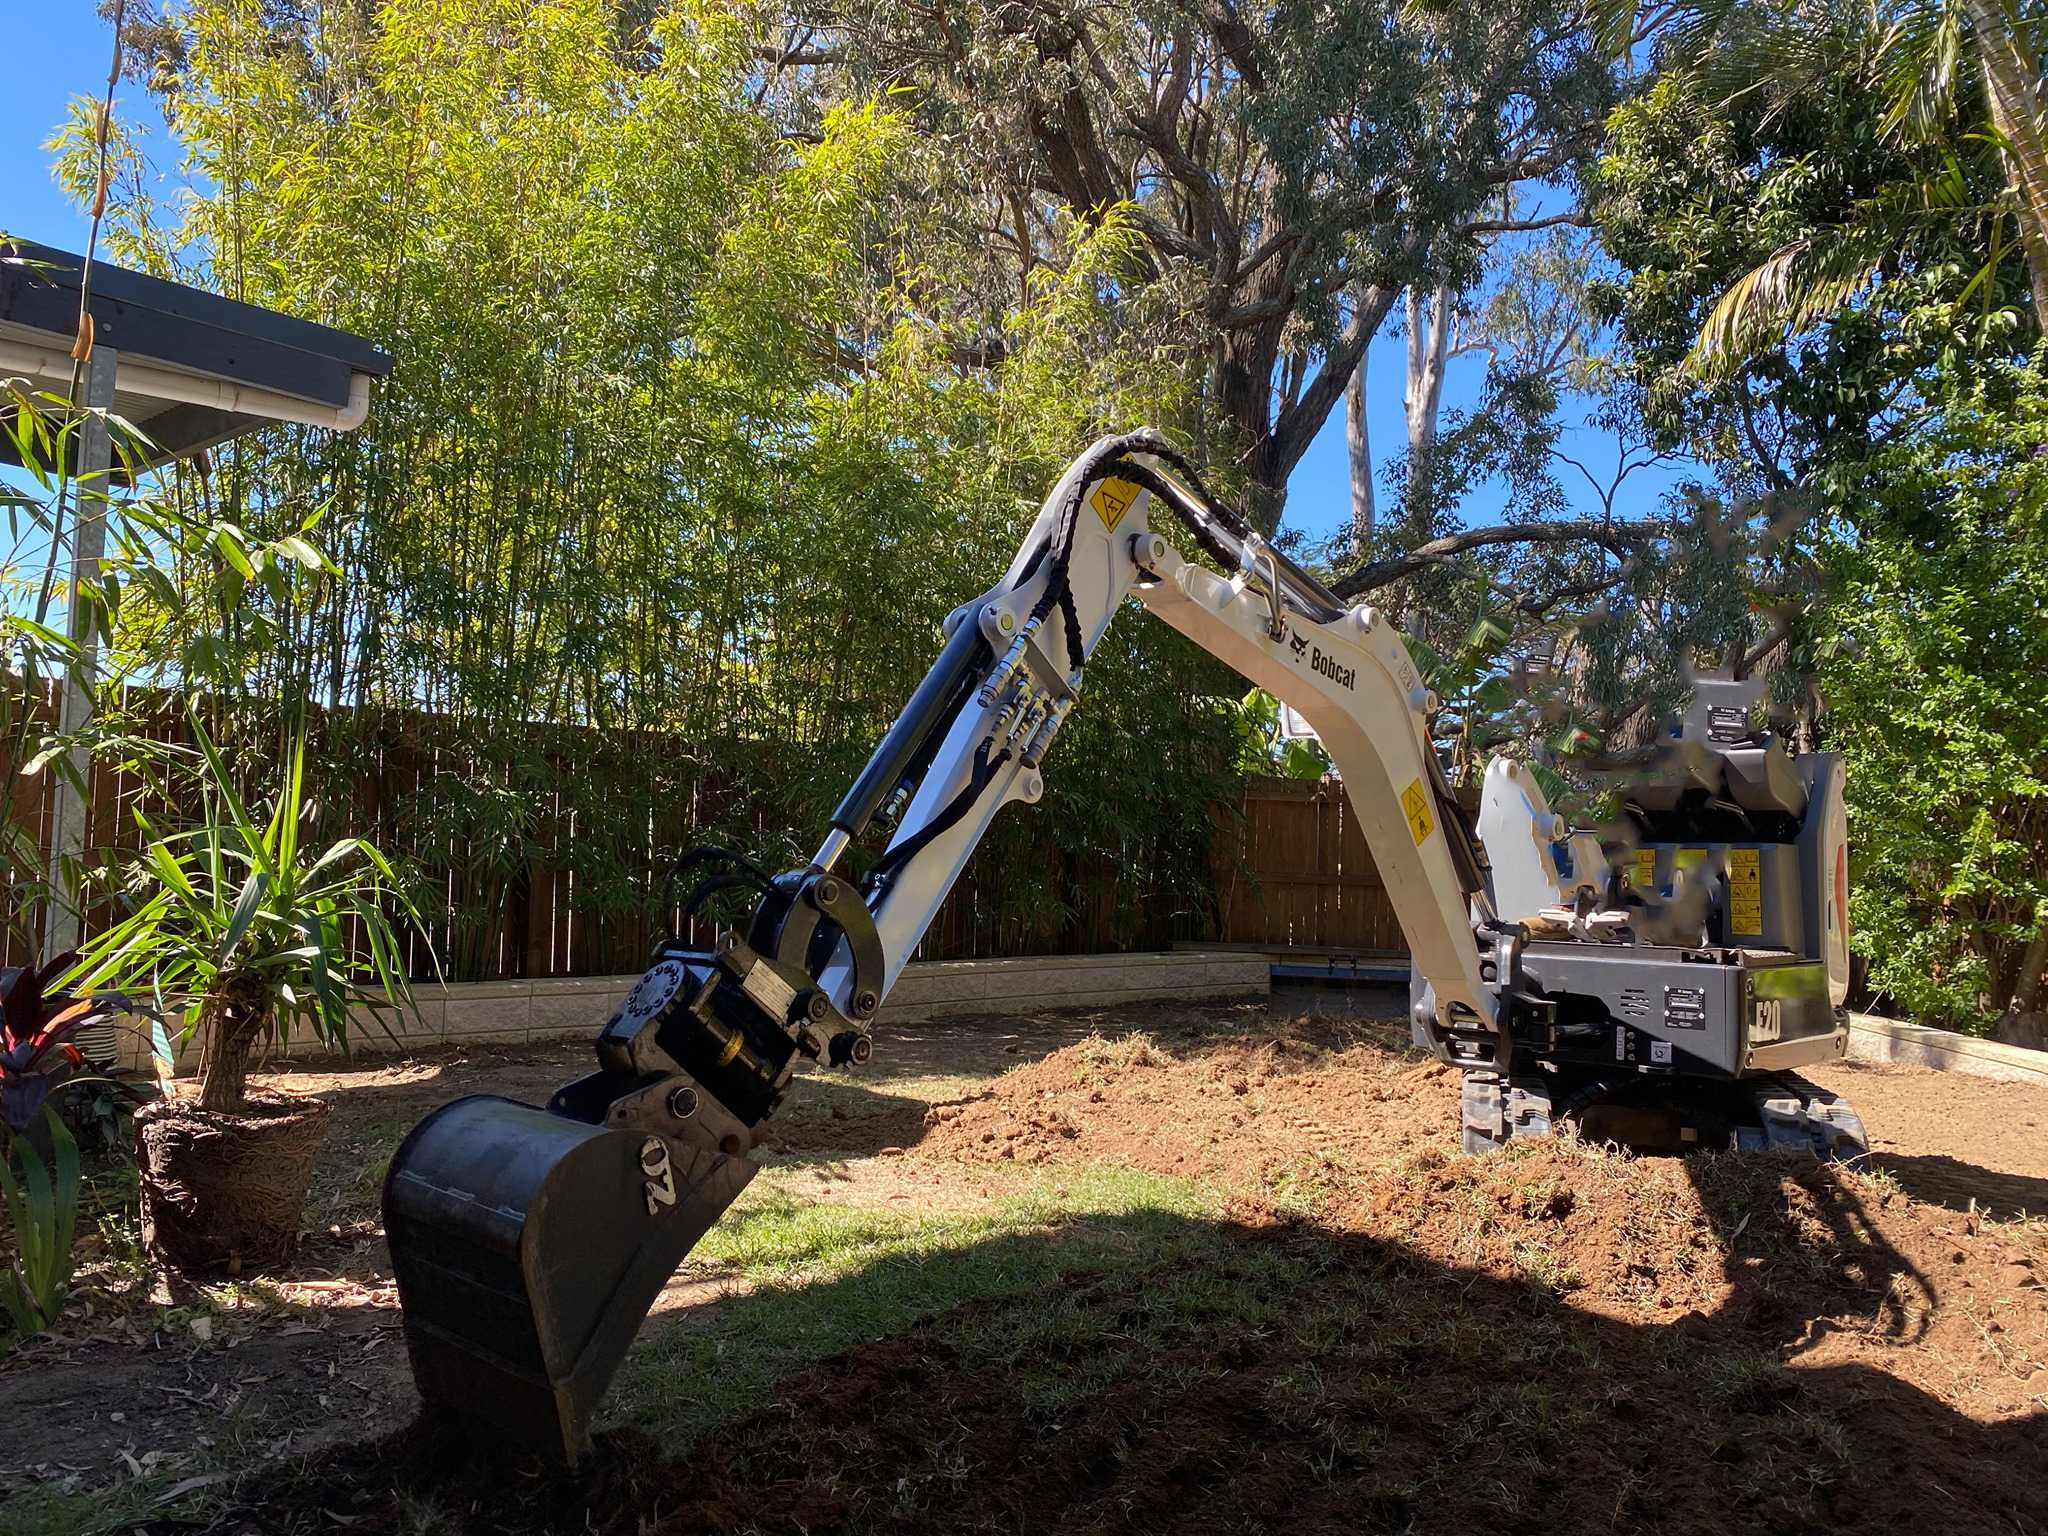 Bob Cat E20 Excavator and Vermeer S450TX mini skid steer Loader combo for wet hire with operator - Capalaba